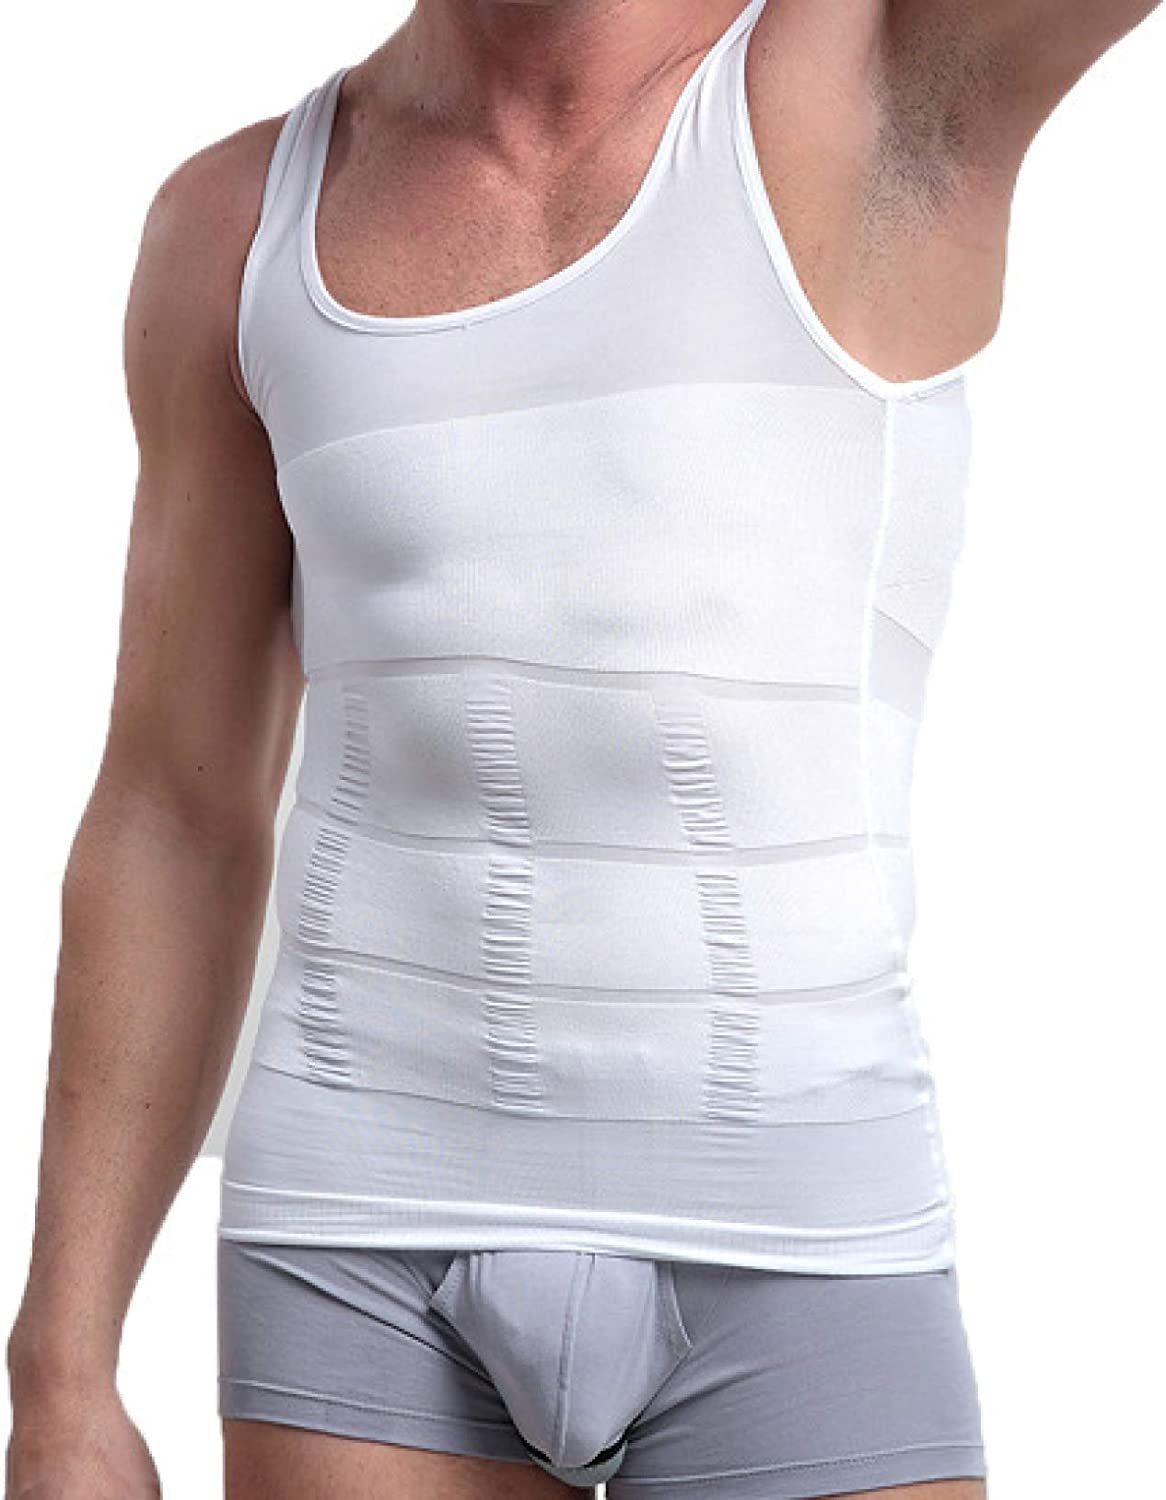 TRESOMI OFFicial mail order Shapewear for Men Under wear Si Thin Max 64% OFF and Wrestling Light